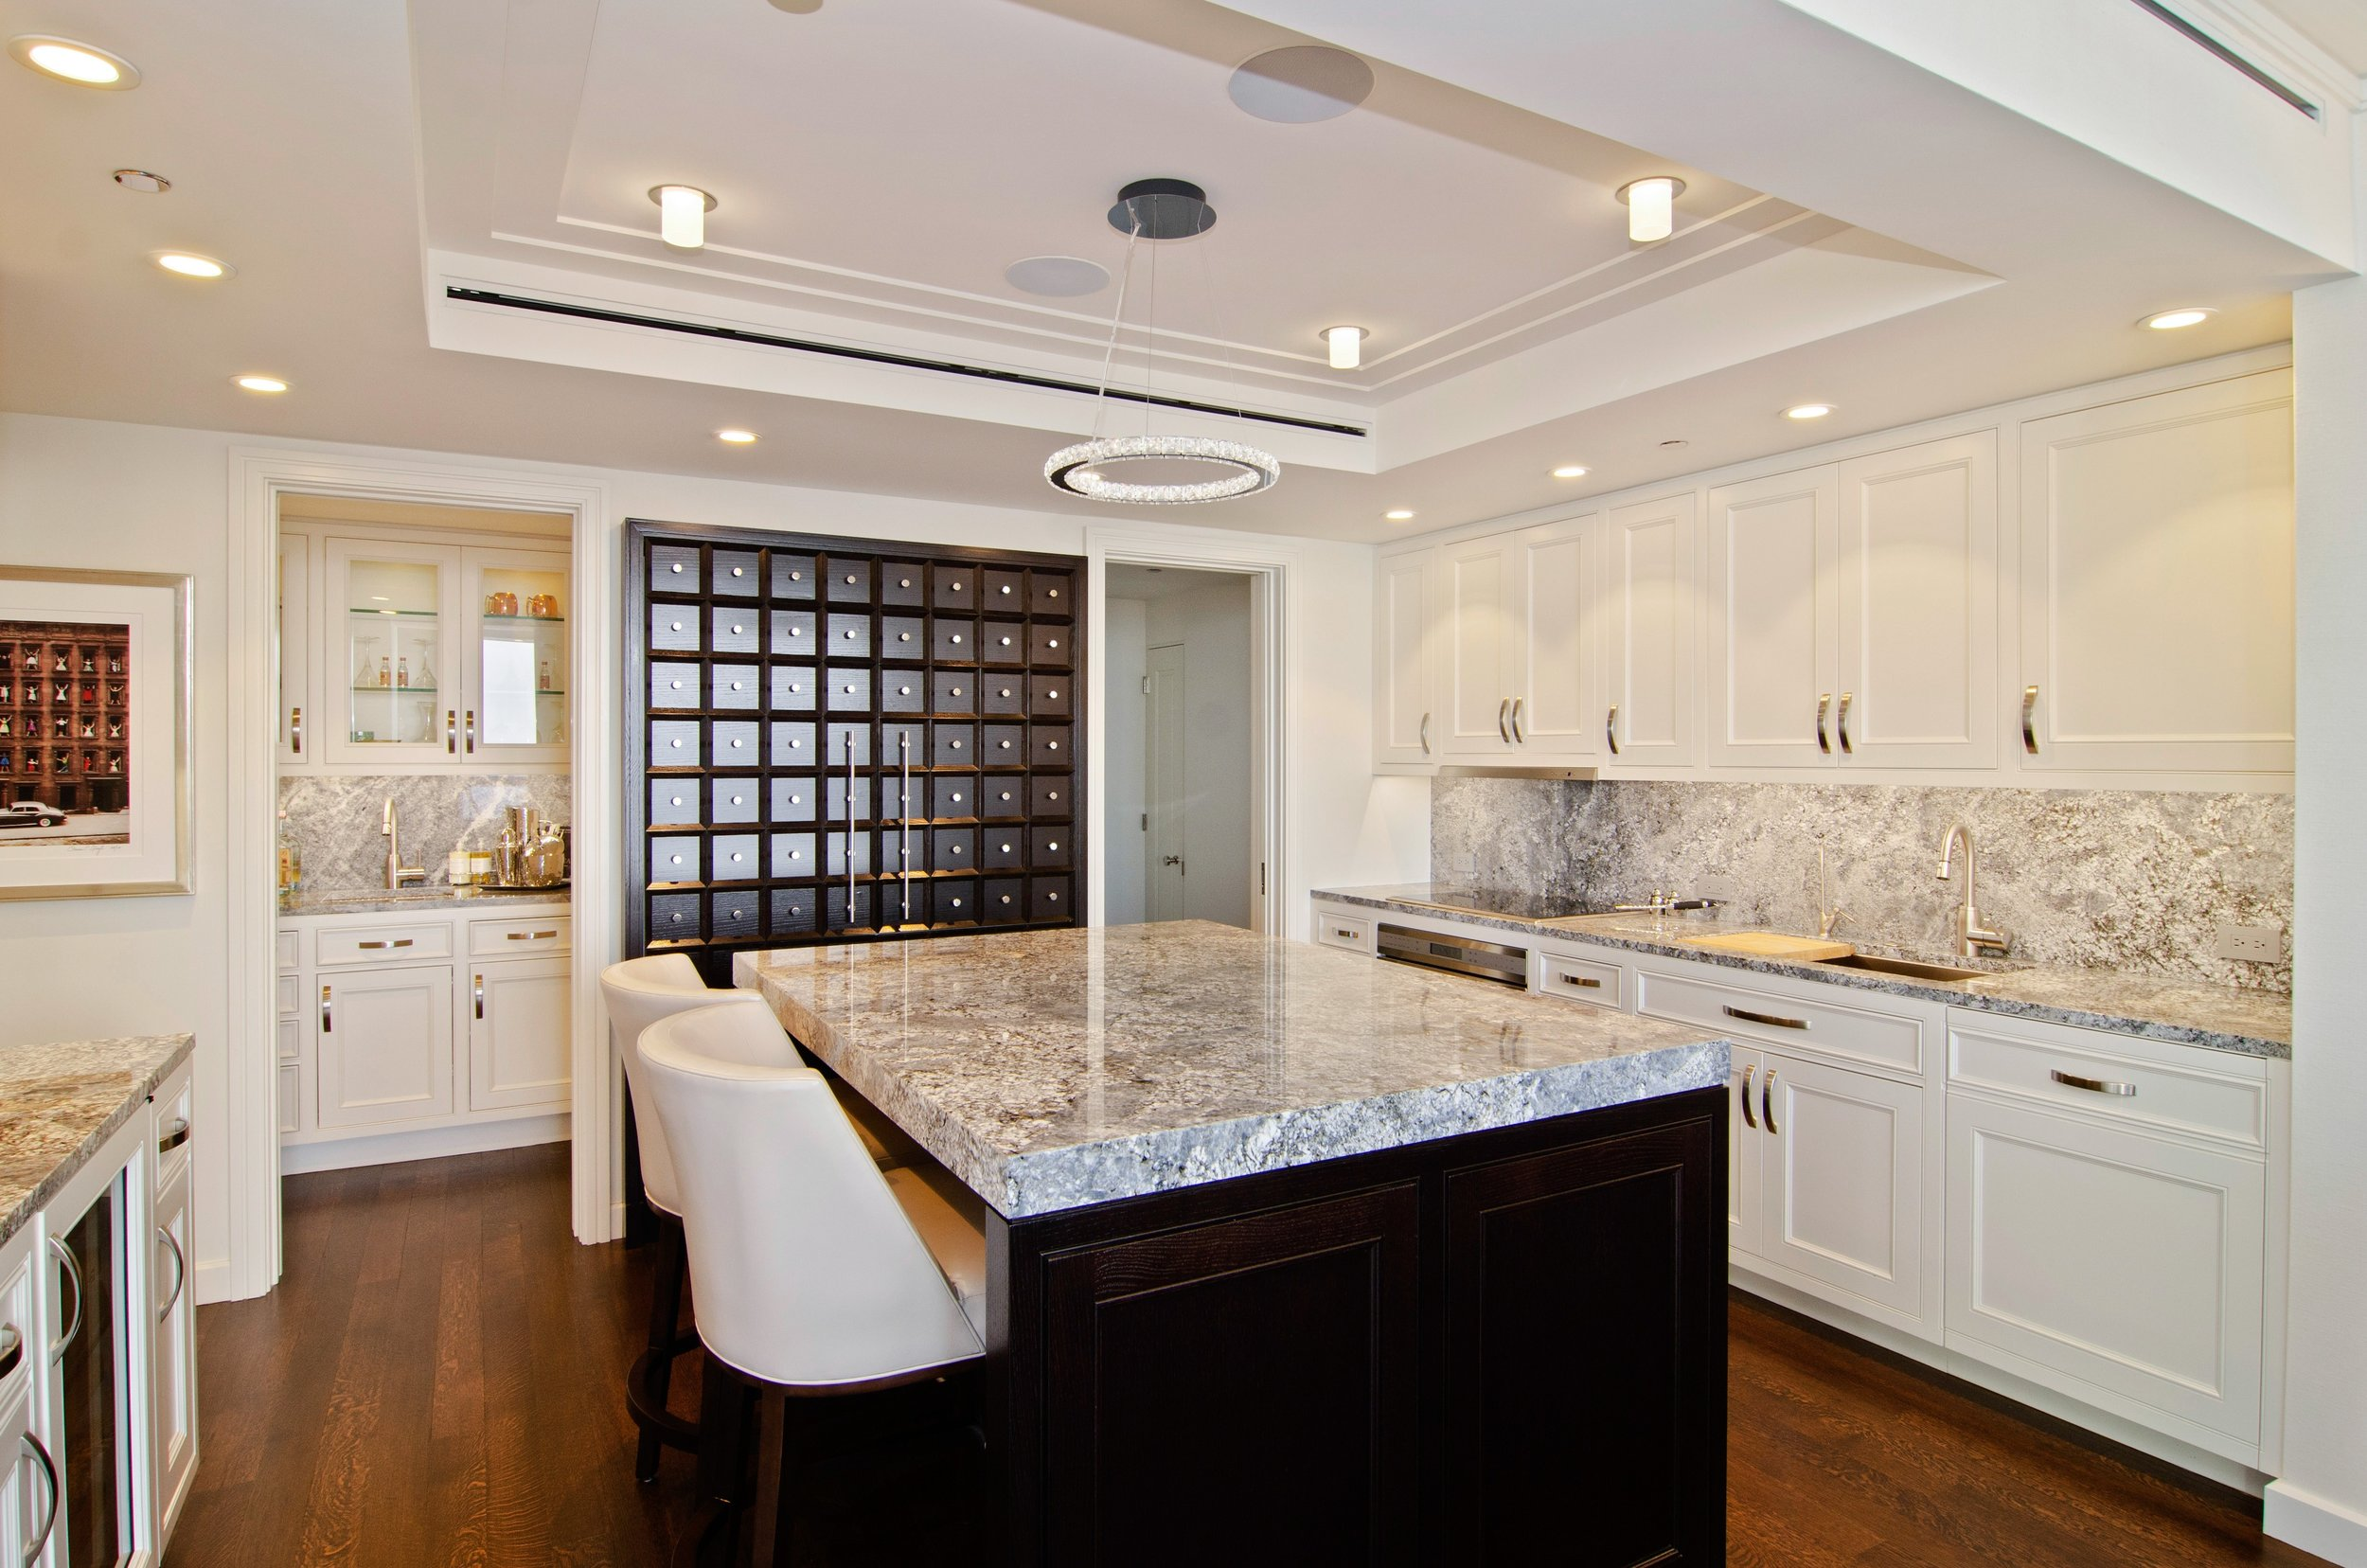 06_180EPearsonSt_Apt4601_5_Kitchen_HiRes.jpg